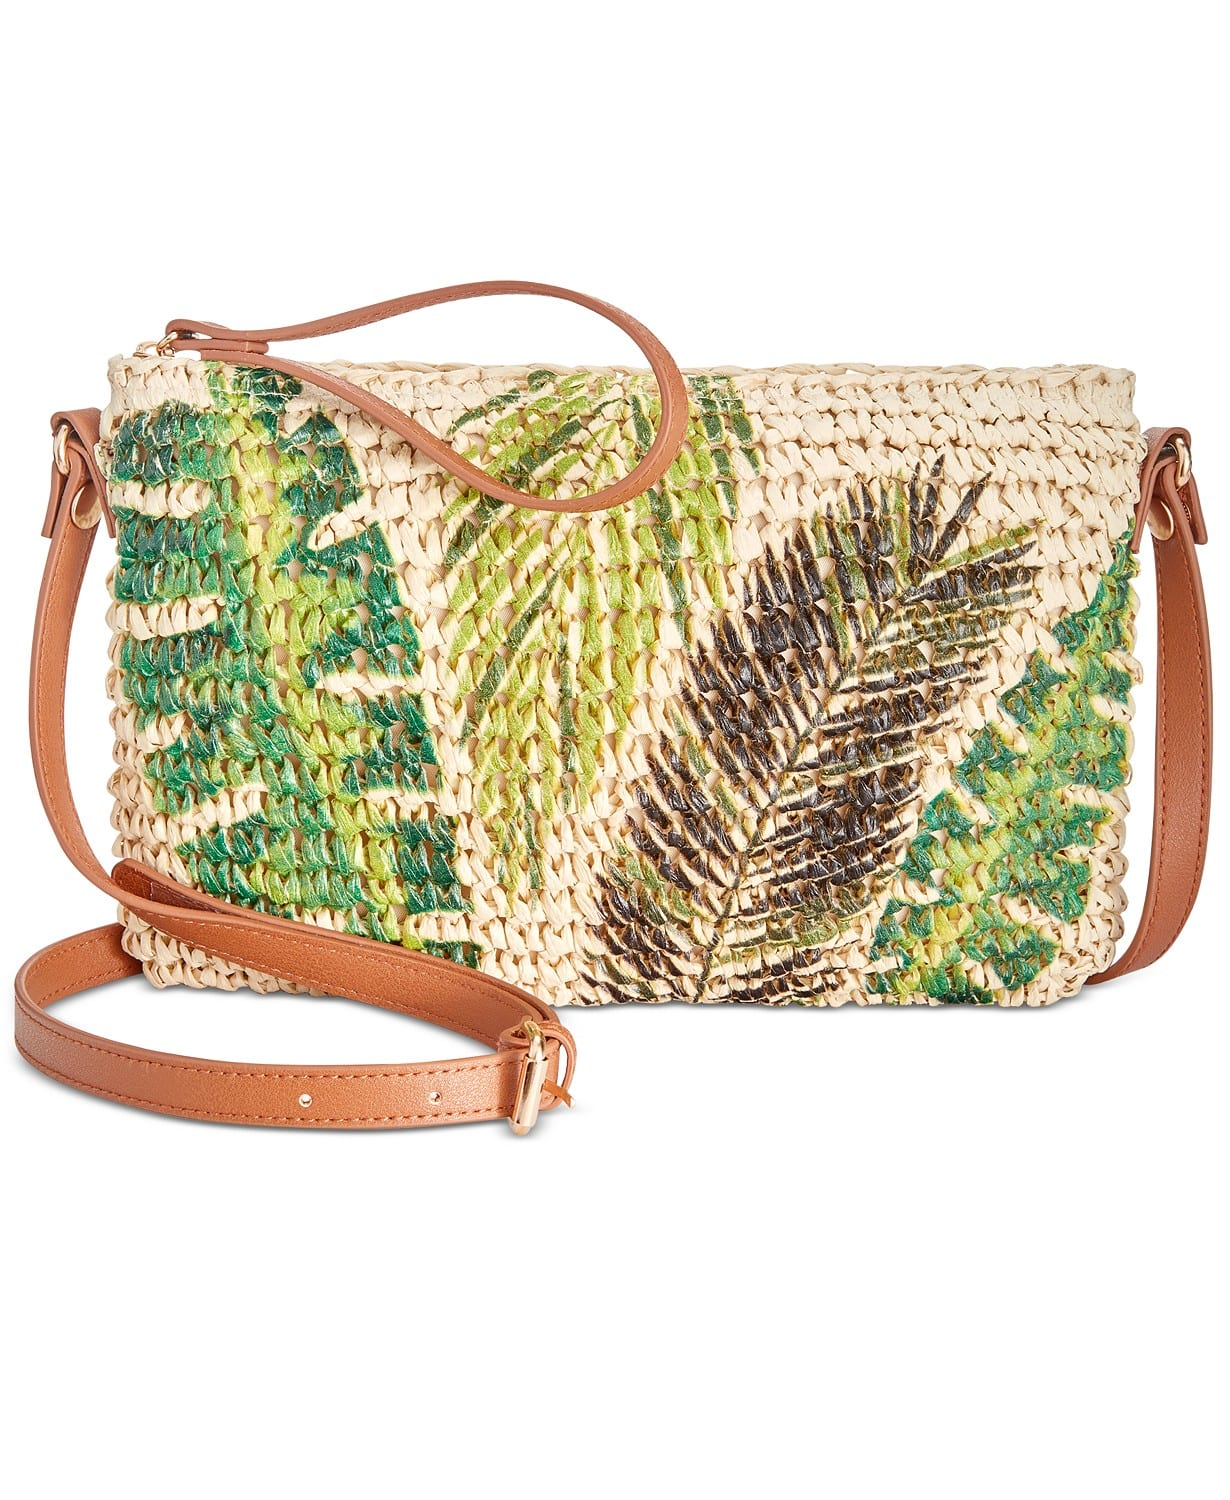 Women's Handbags & Accessories: INC Tropical Straw Crossbody $11.76, Tommy Hilfiger Smooth Dome Backpack $58.93 & More + F/S on $25+